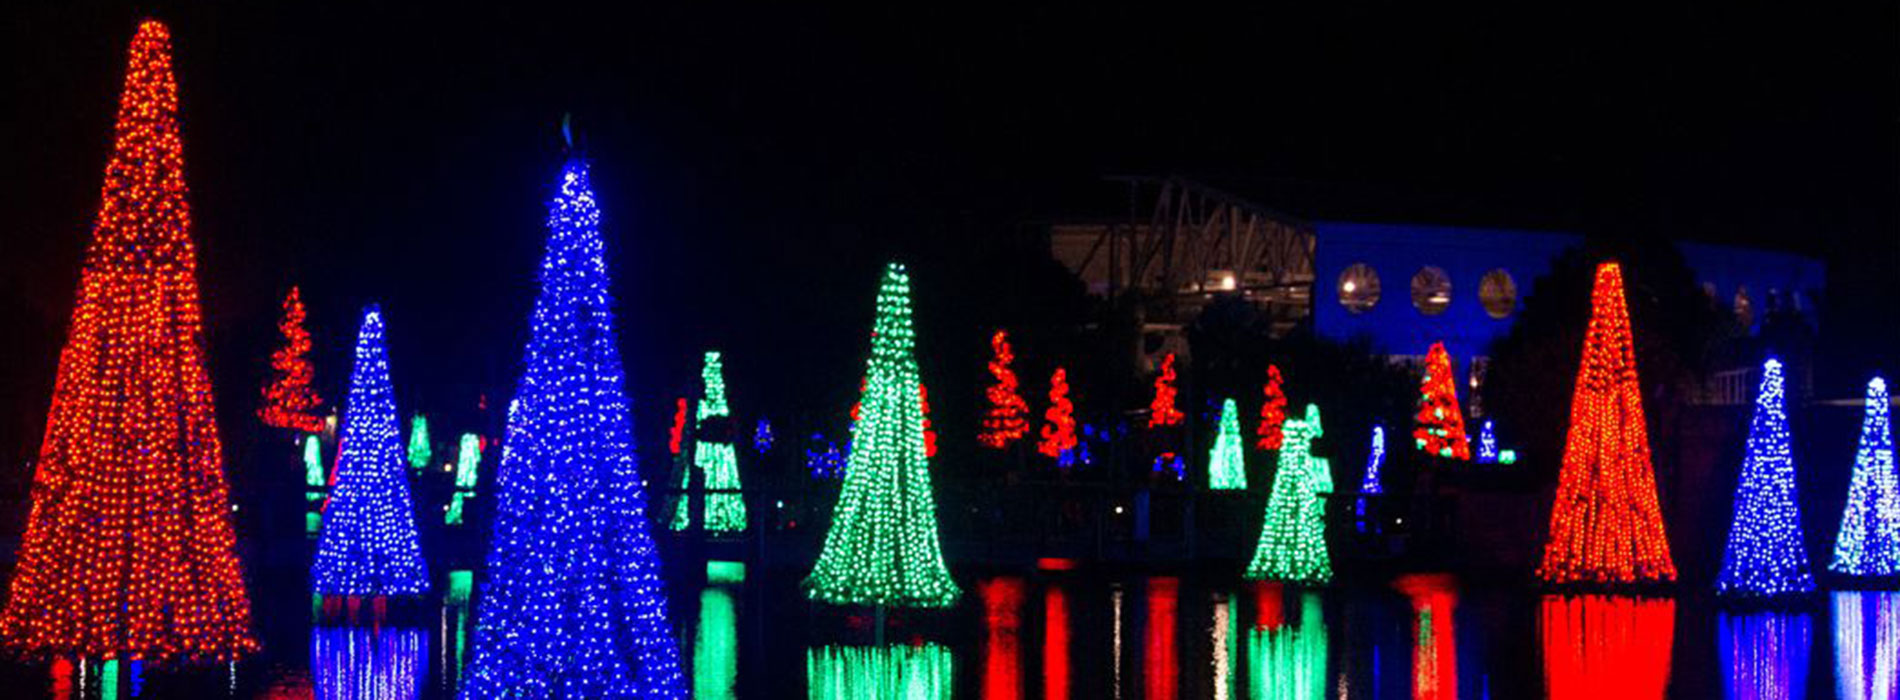 Sea of Trees at SeaWorld's Christmas Celebration